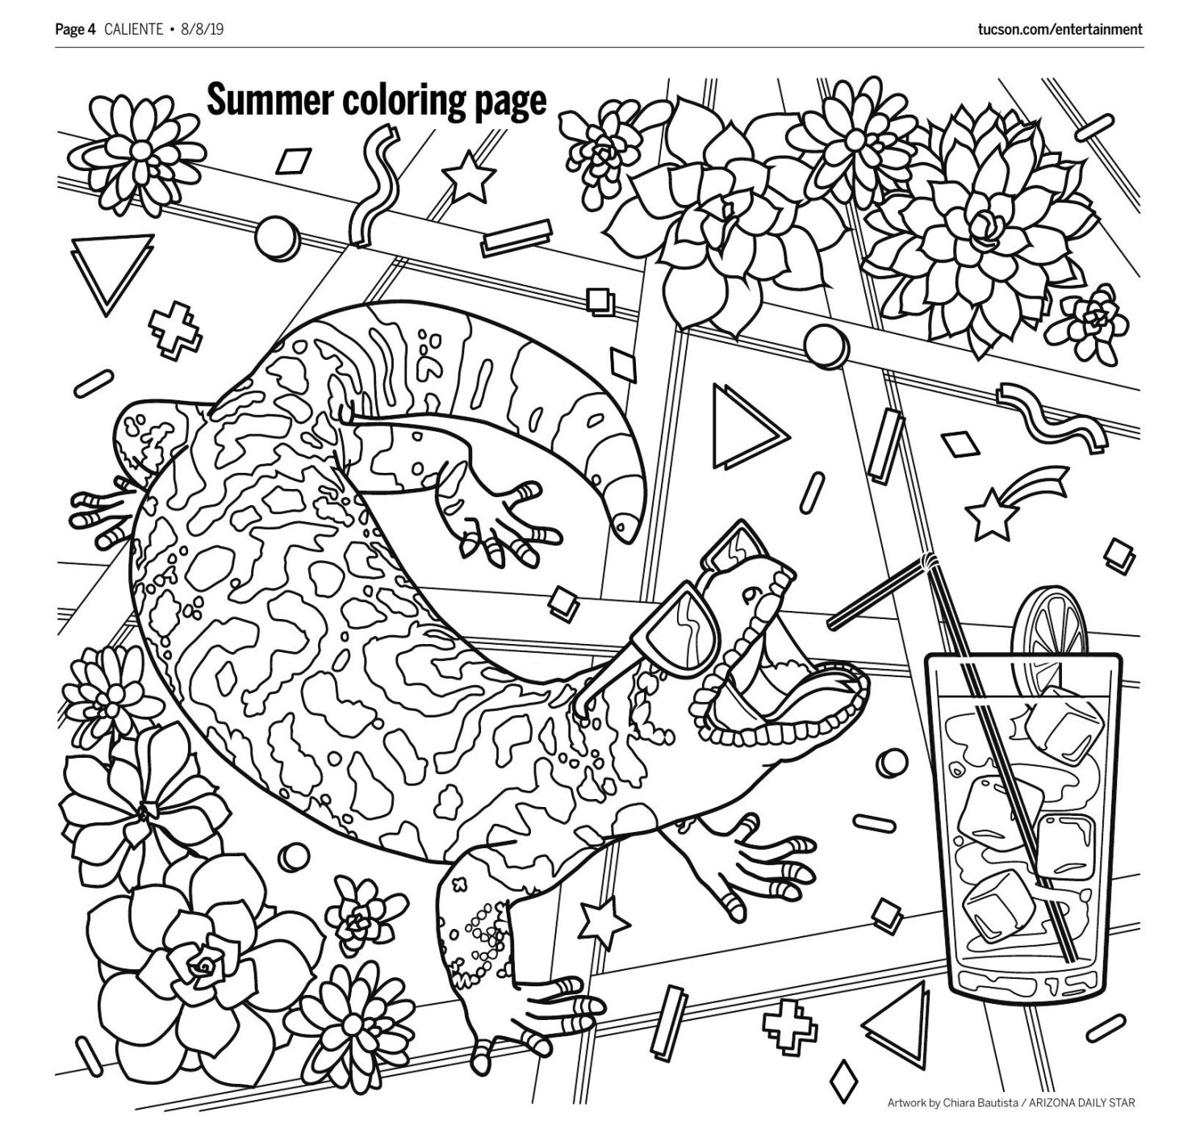 August 8 coloring page